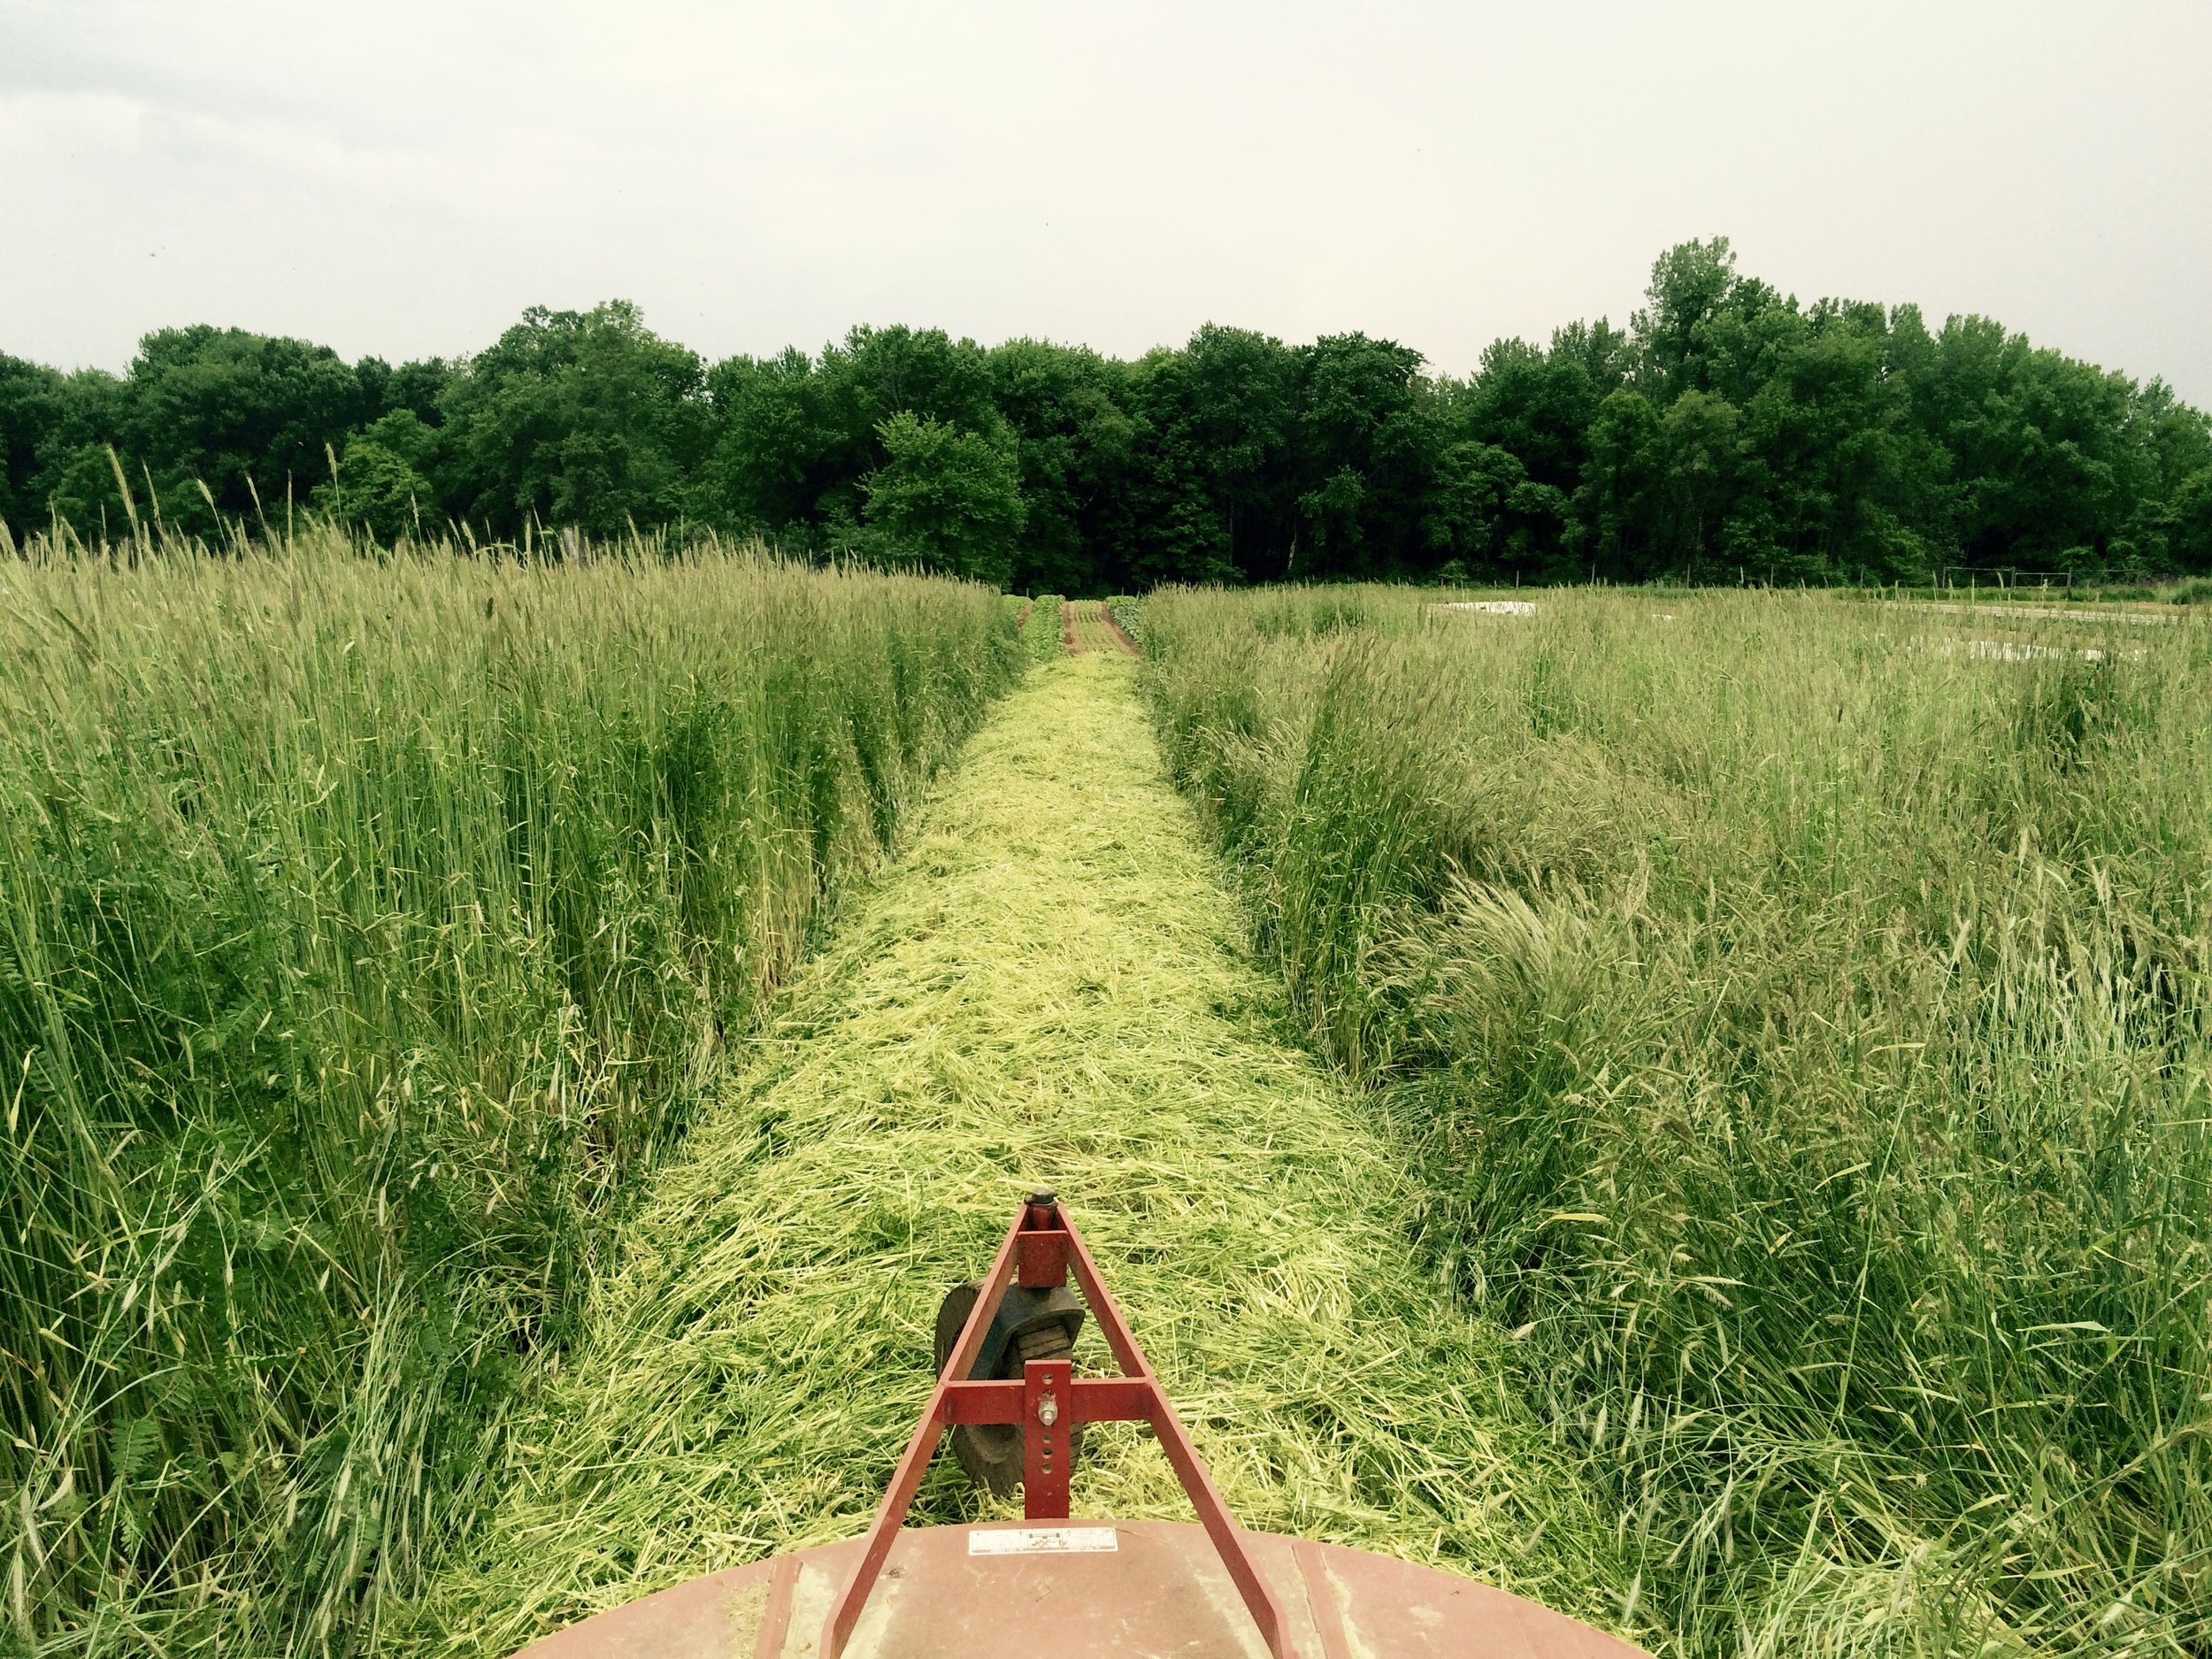 Mowing a tall stand of rye and hairy vetch is labor-intensive, but it supplies the soil with much beneficial carbon and nitrogen.